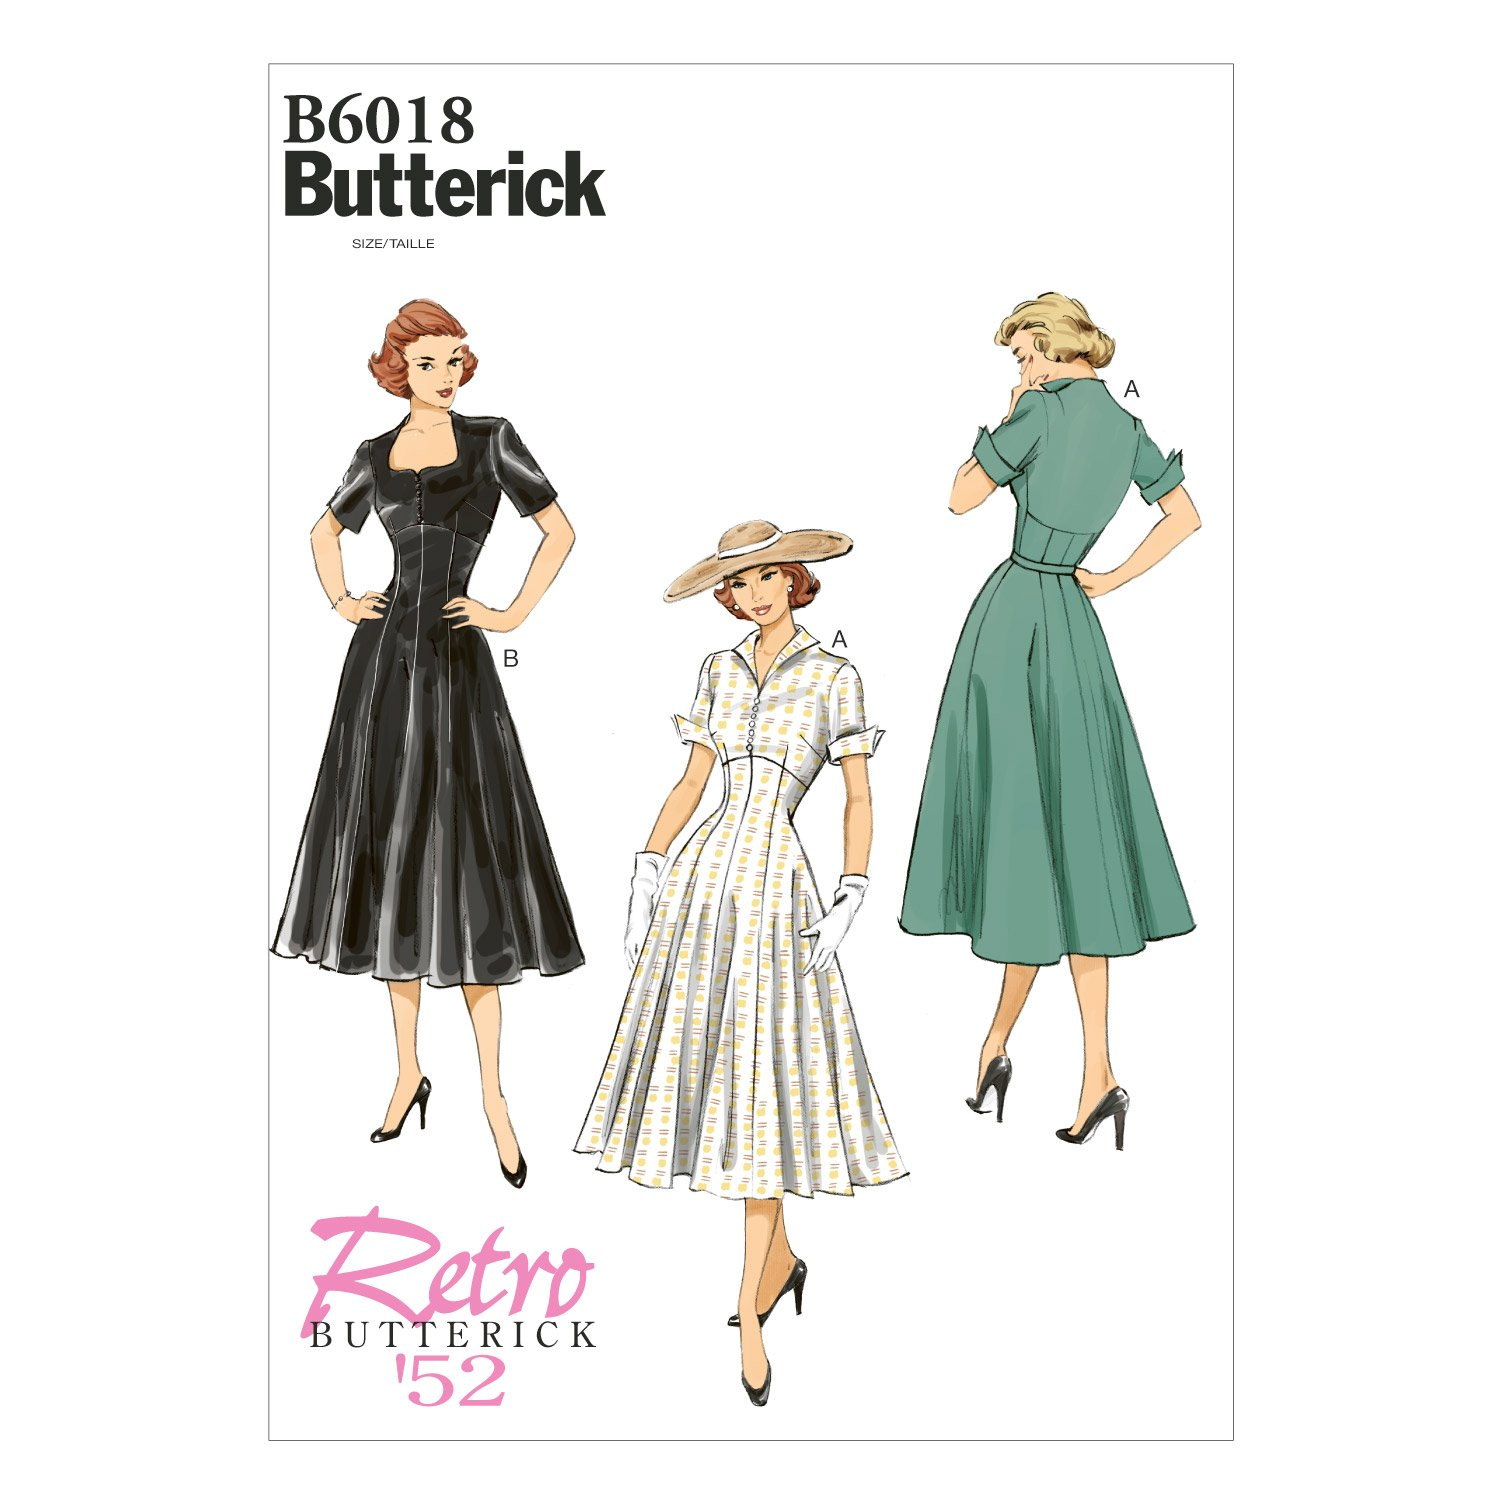 1950s Sewing Patterns | Dresses, Skirts, Tops, Mens 1952 Butterick Patterns B6018A50 Misses Dress Sewing Template Size A5 (6-8-10-12-14) $7.94 AT vintagedancer.com